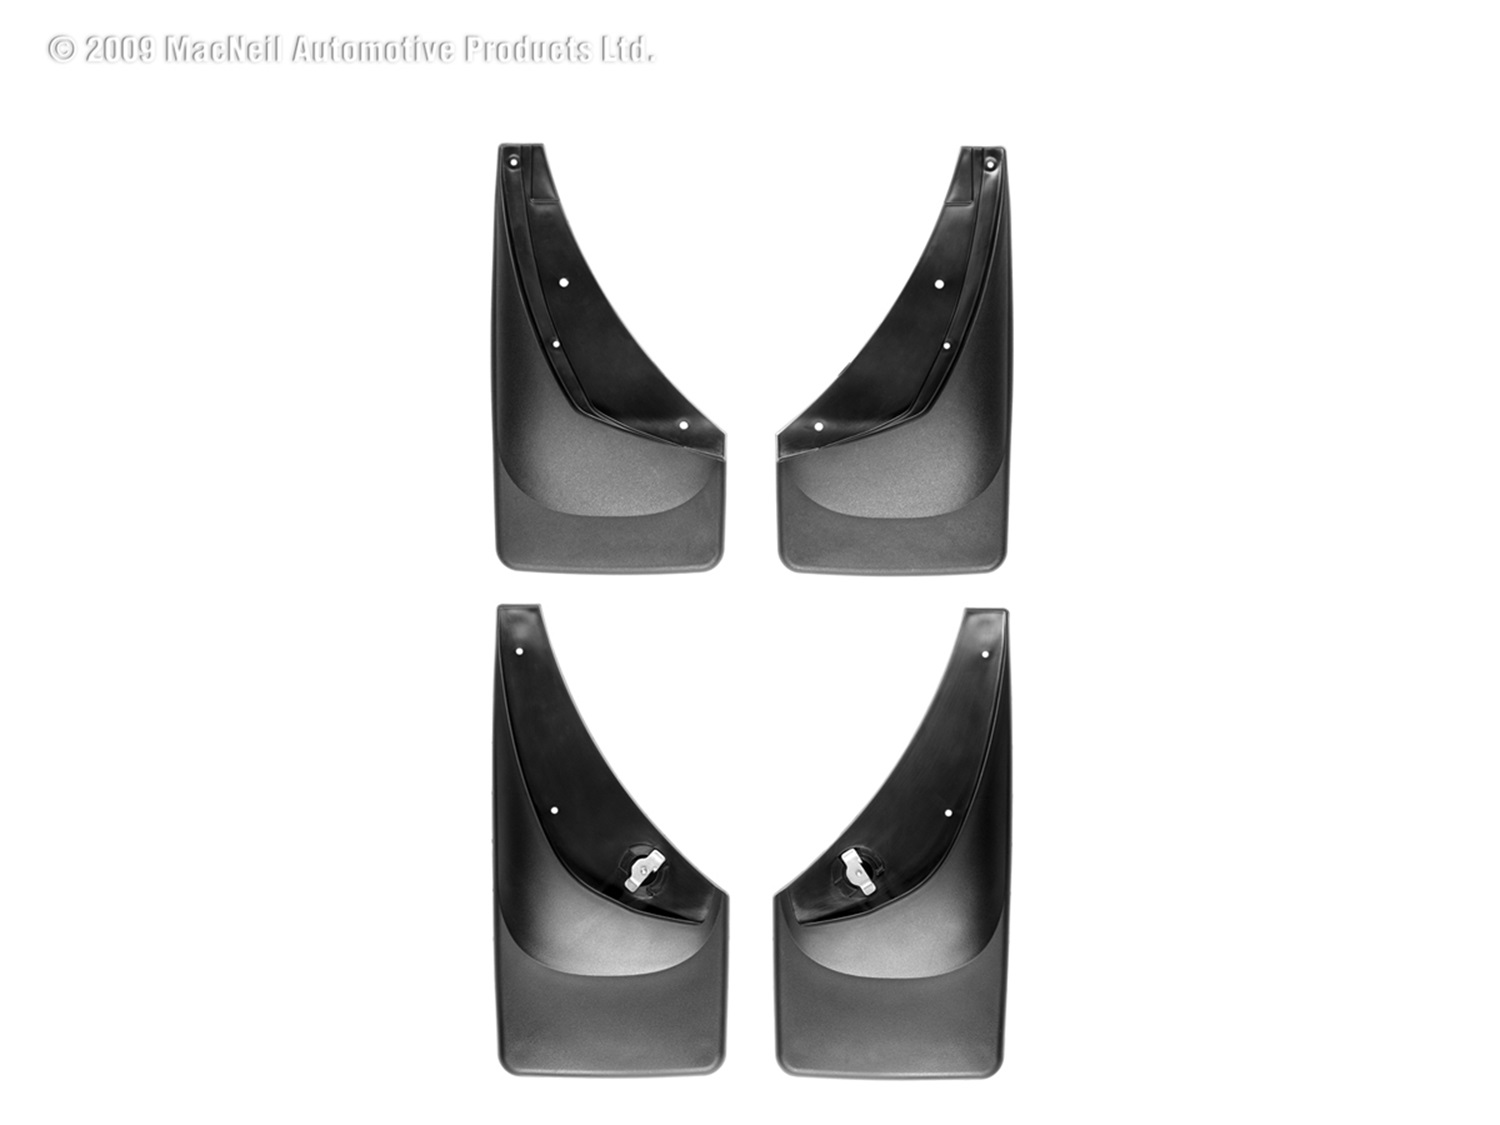 WeatherTech 110006-120006 No Drill Mudflaps, Black